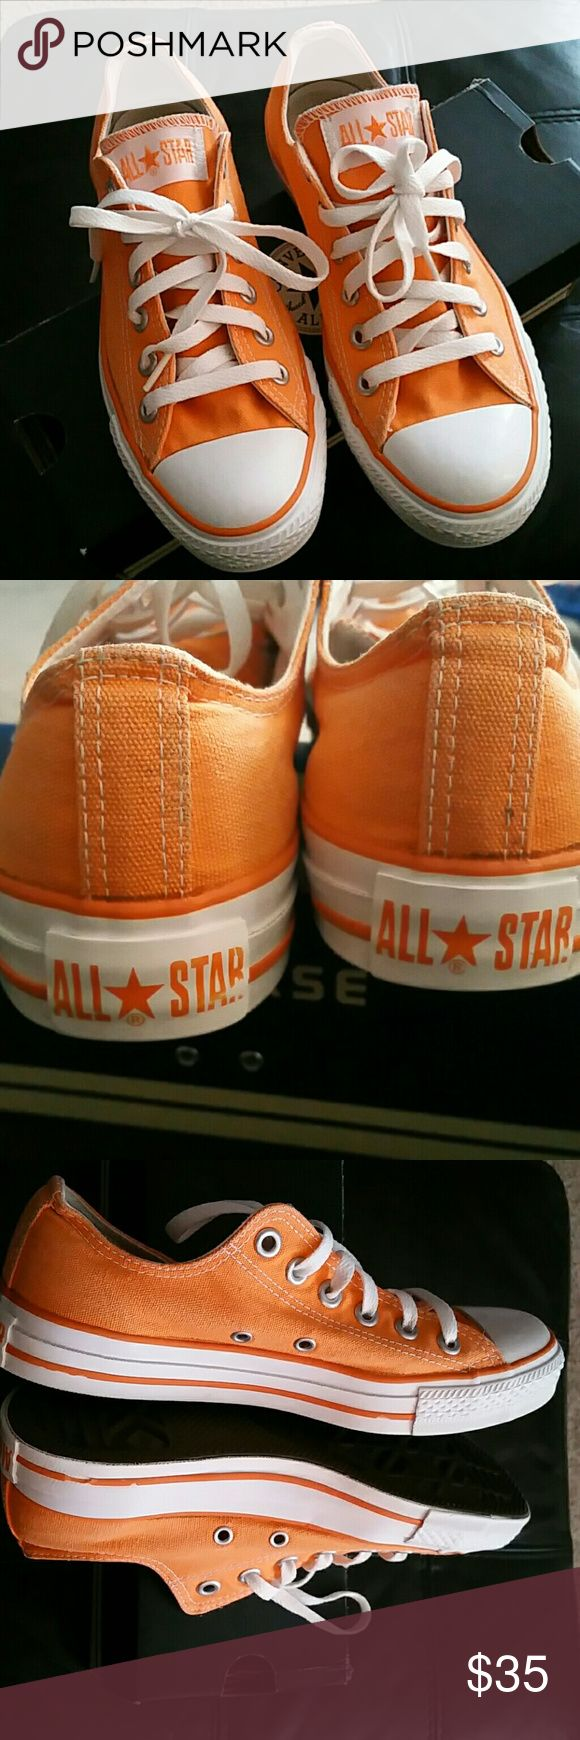 Light Orange Converse, Mens 5 / Women's 7 Light Orange Converse, Men's 5 / Women's 7. Love these shoes but need the next size. Hate to see them go. Hard to find this exact color. Converse Shoes Sneakers